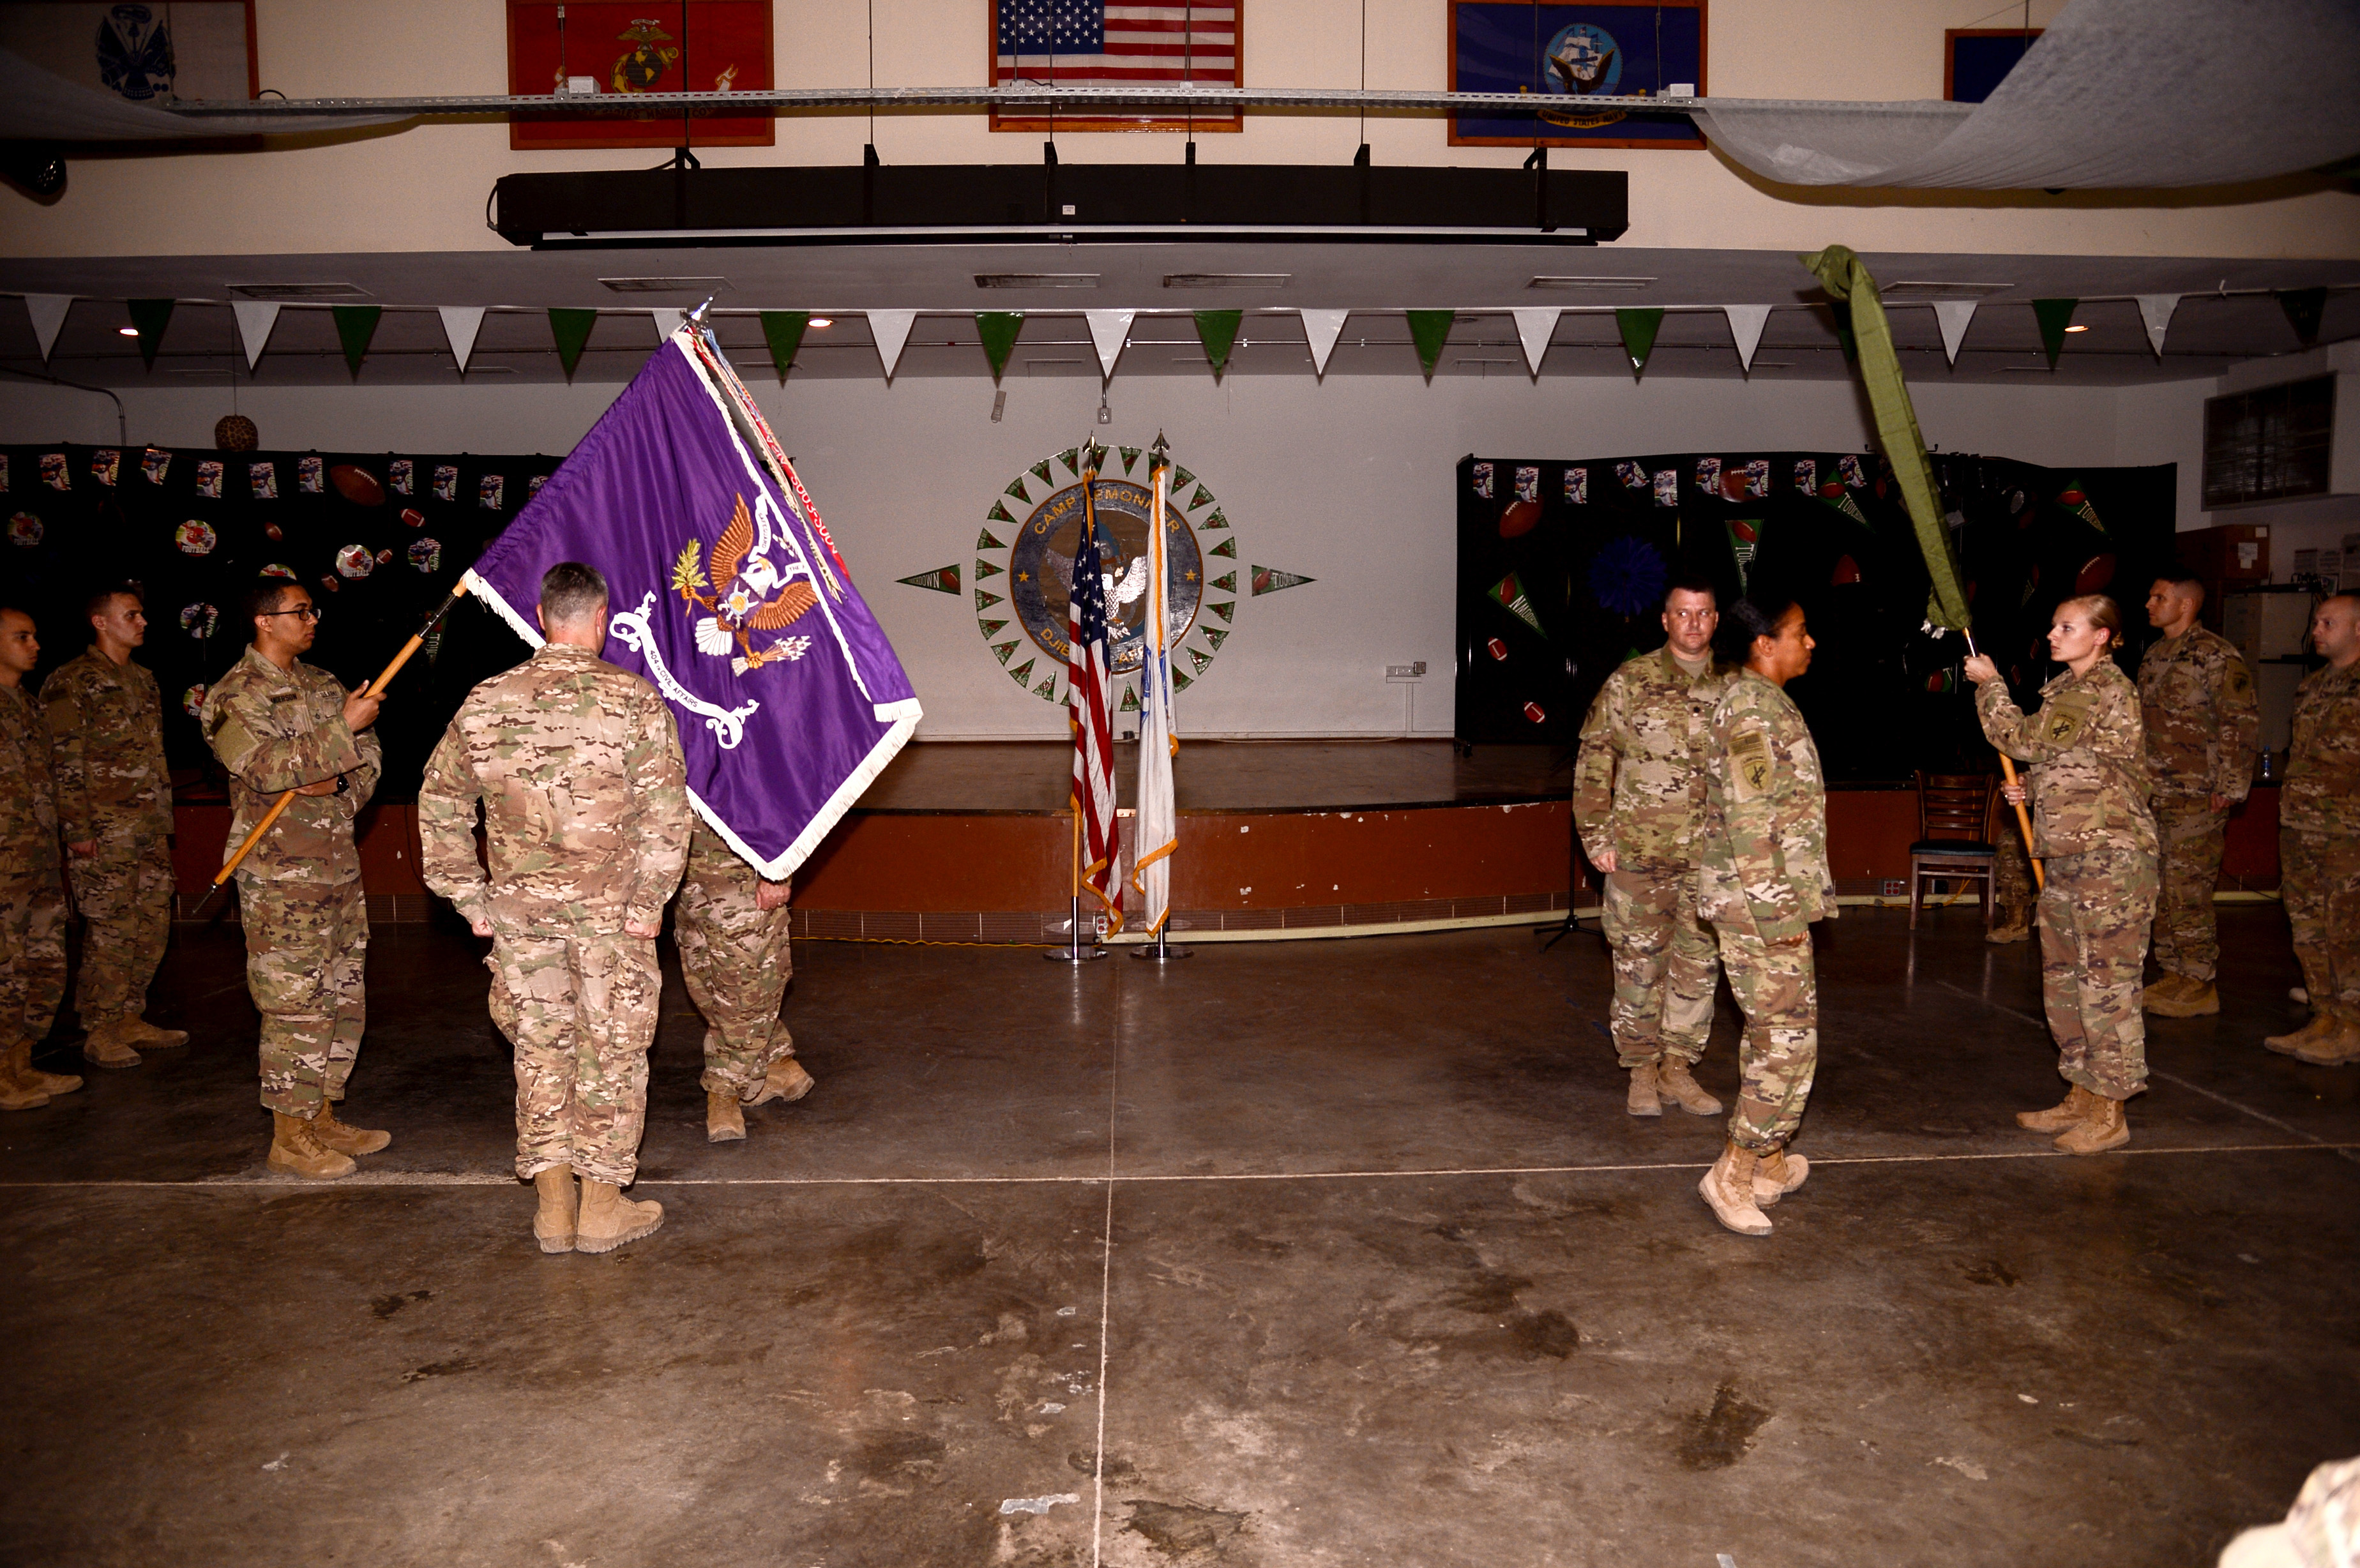 The U.S. Army 443rd Civil Affairs Battalion retires their colors as the 404th Civil Affairs Battalion raises theirs during a transfer of authority ceremony at Camp Lemonnier, Djibouti, Feb. 3, 2018. The 404th will conduct military-to-military engagements to strengthen partner nation capacity and relationships with local military forces, civilian populations and civilian authorities. They also advise the Combined Joint Task Force Horn of Africa commanding general on the civil environment. (U.S. Navy Photo by Mass Communication Specialist 2nd Class Timothy M. Ahearm)